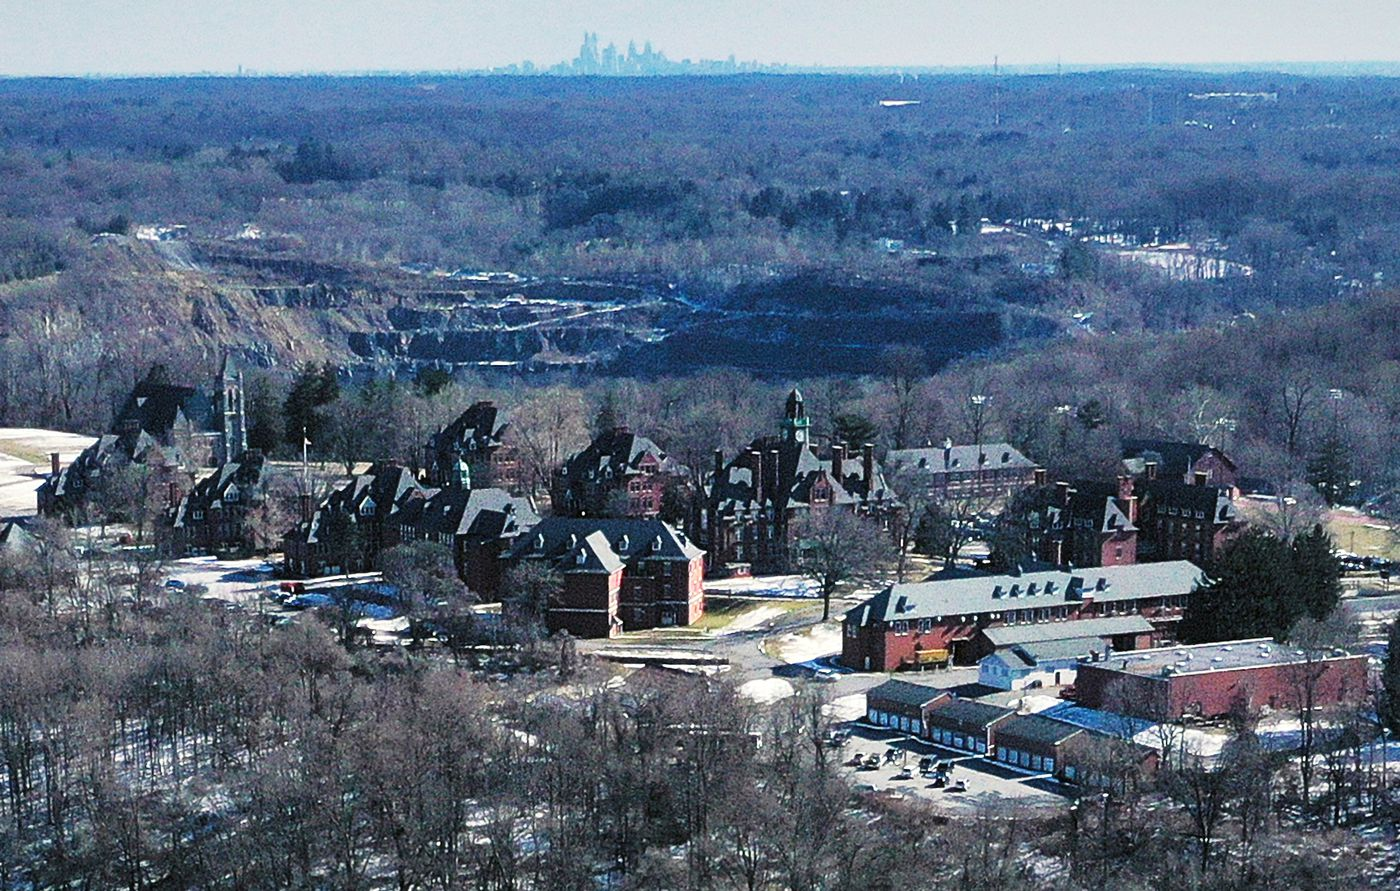 After Glen Mills Abuses, Governor Proposes $5 Million for Oversight Staff